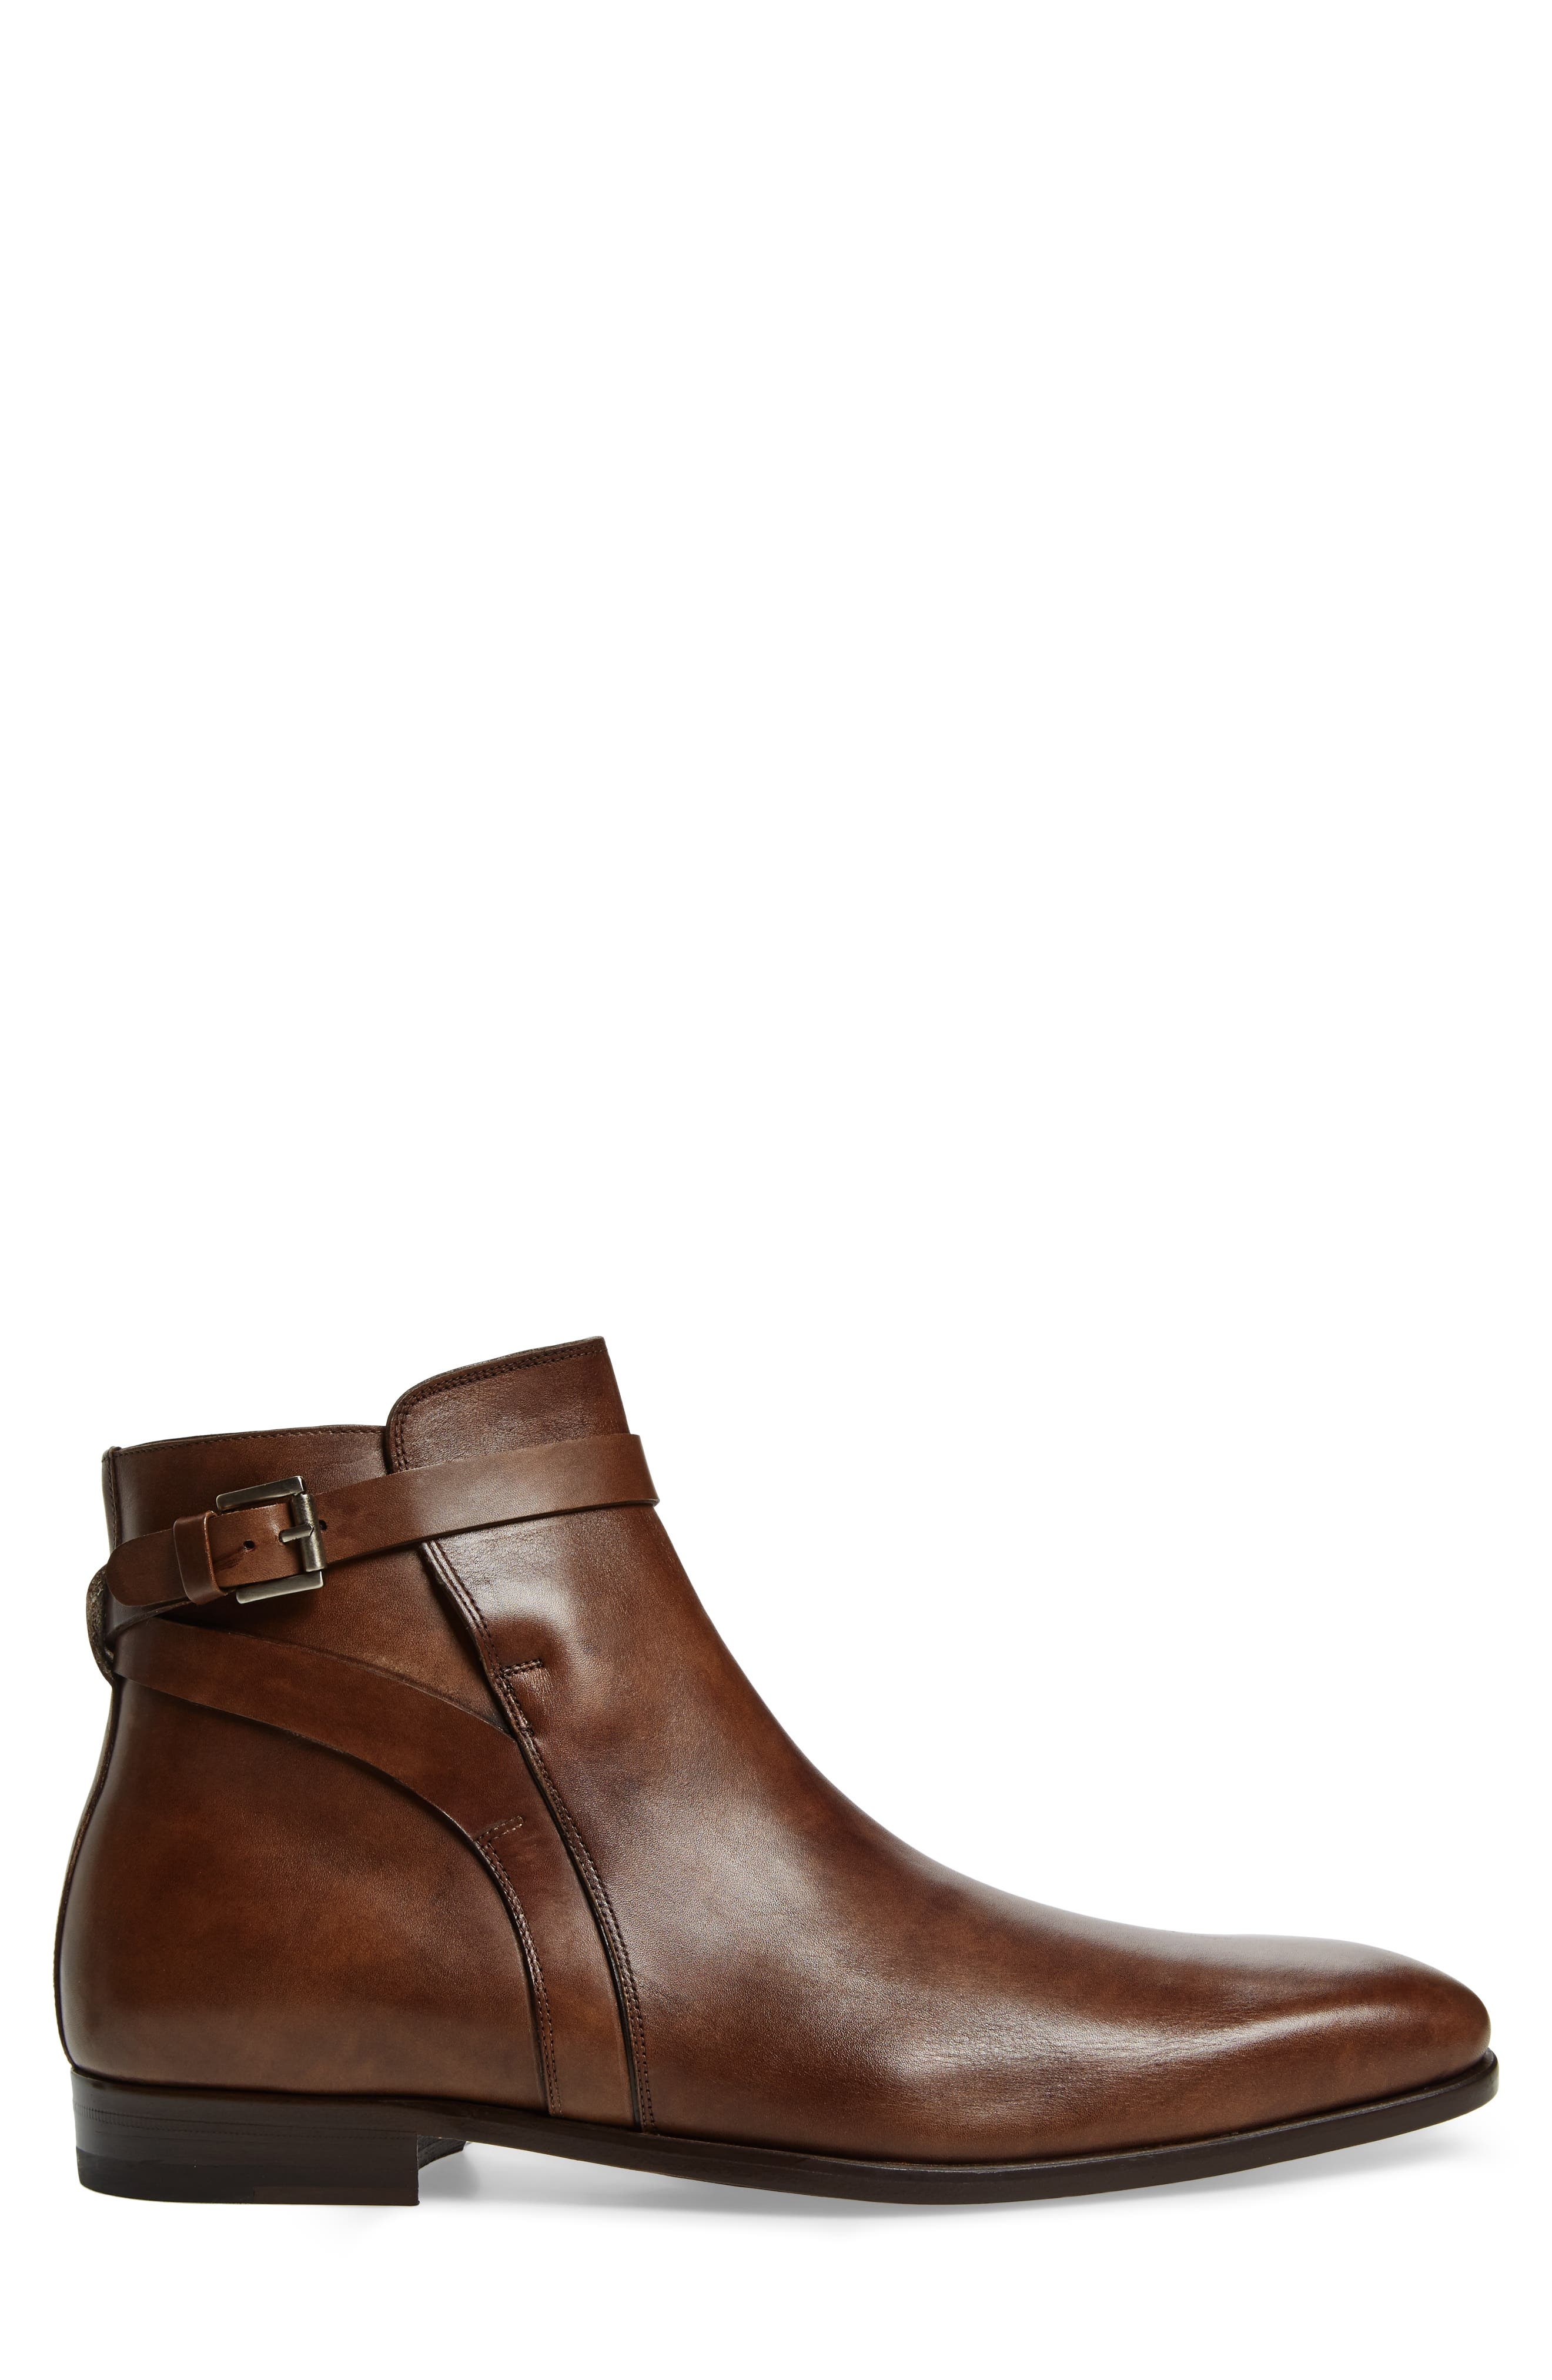 Viso Zip Boot,                             Alternate thumbnail 3, color,                             TAUPE LEATHER